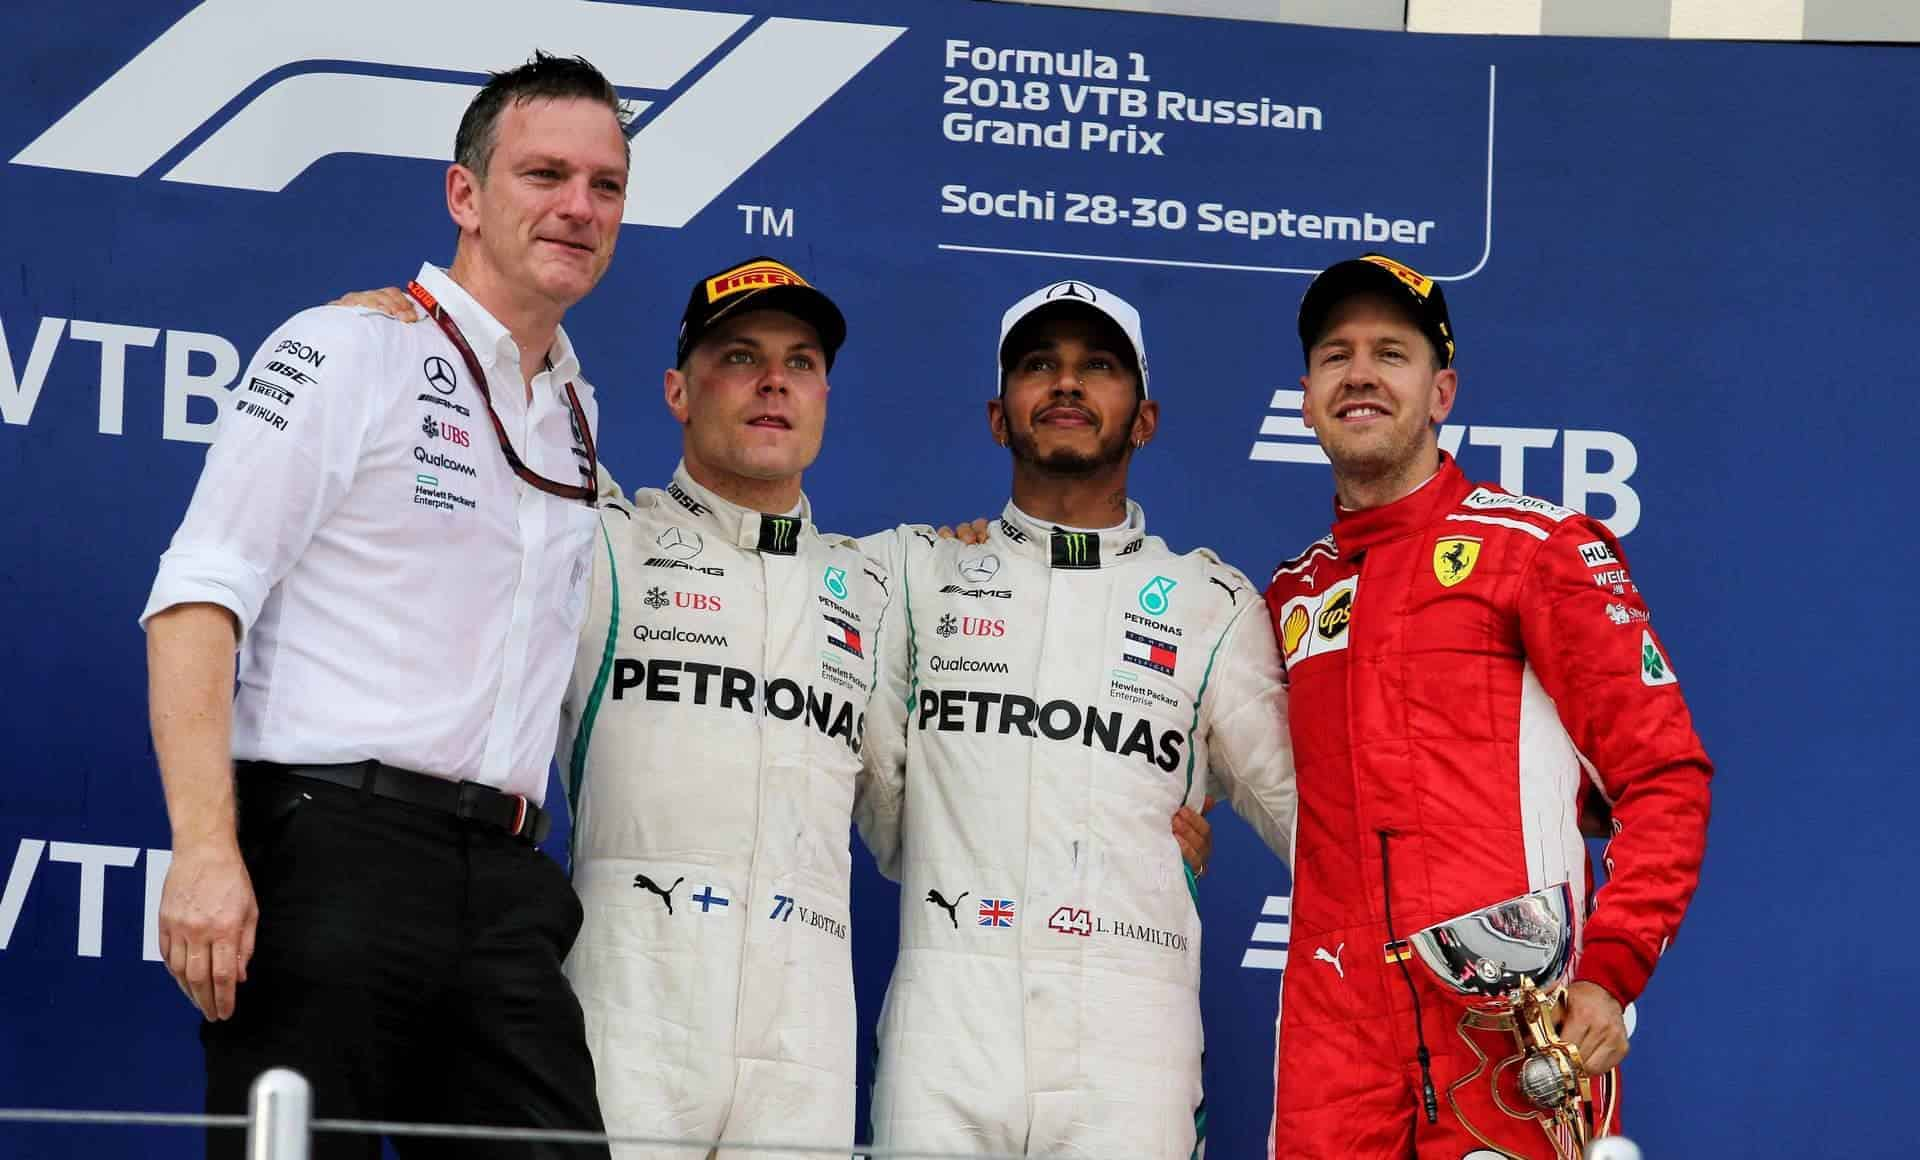 Bottas Allison Hamilton Vettel Mercedes Russian GP F1 2018 podium Photo Daimler